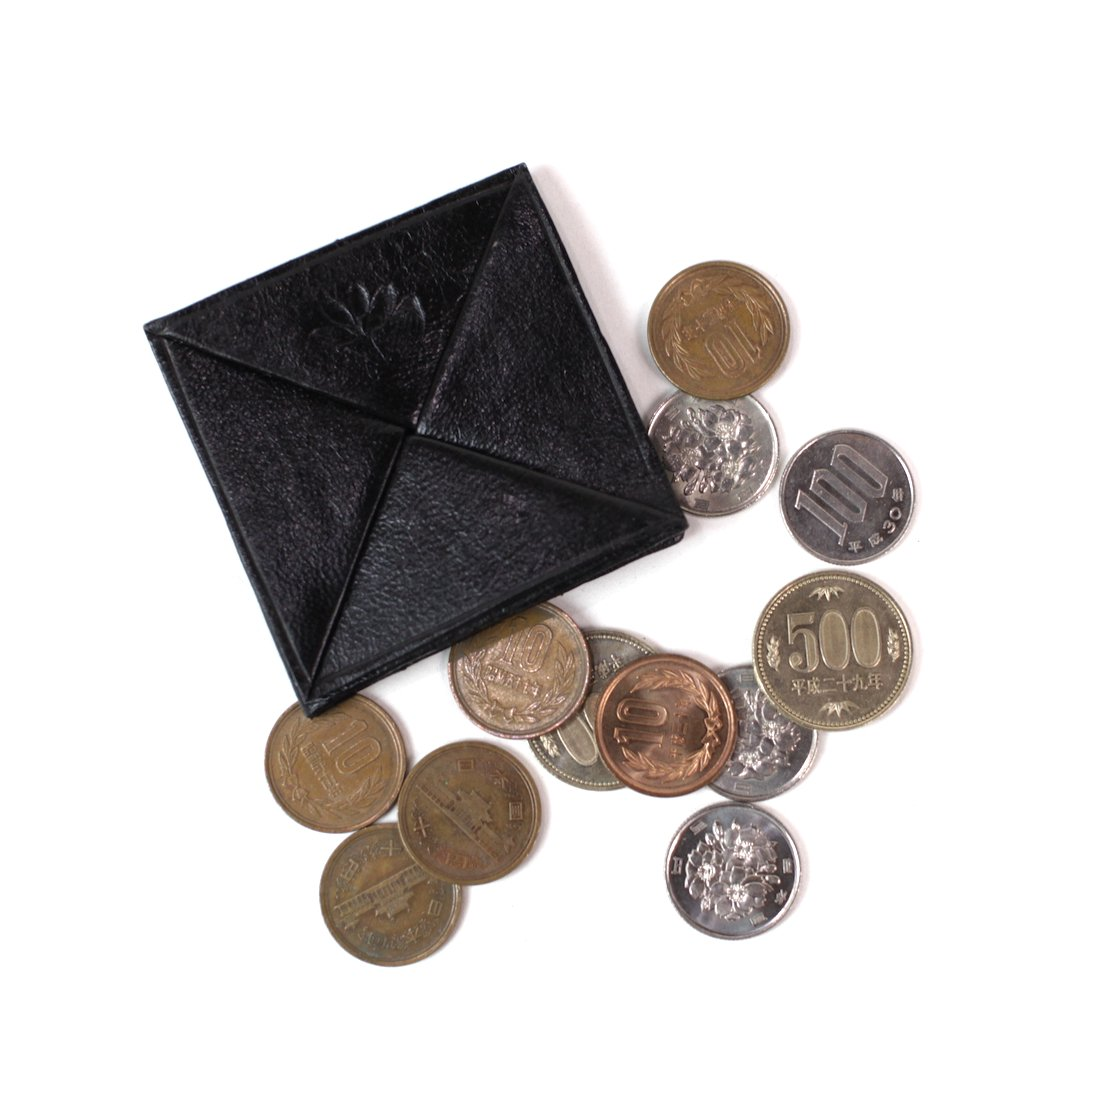 【MAGENTA】Sp21 Morrocon Coin Holder - Black